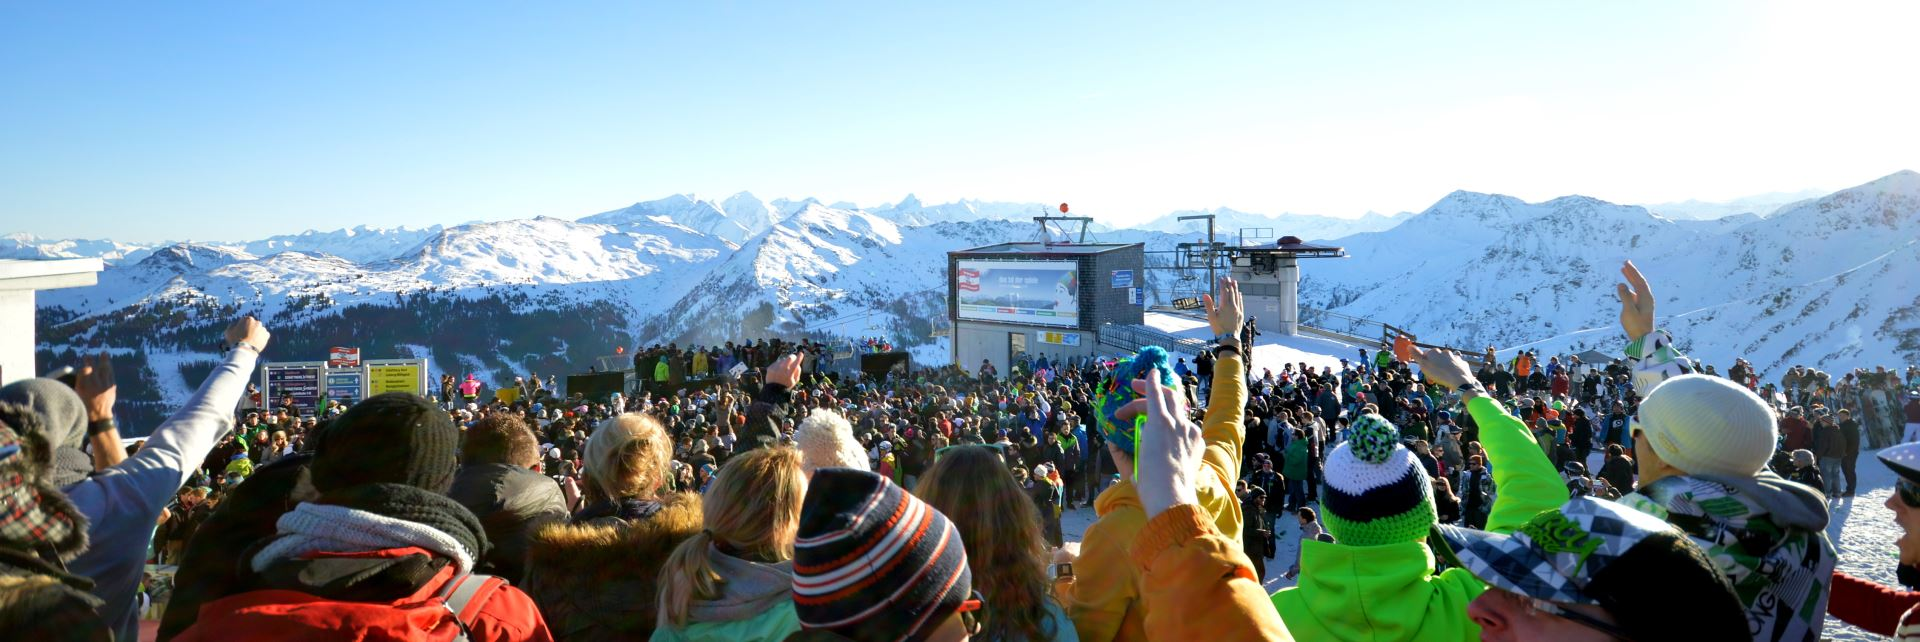 Winterevents in Saalbach-Hinterglemm